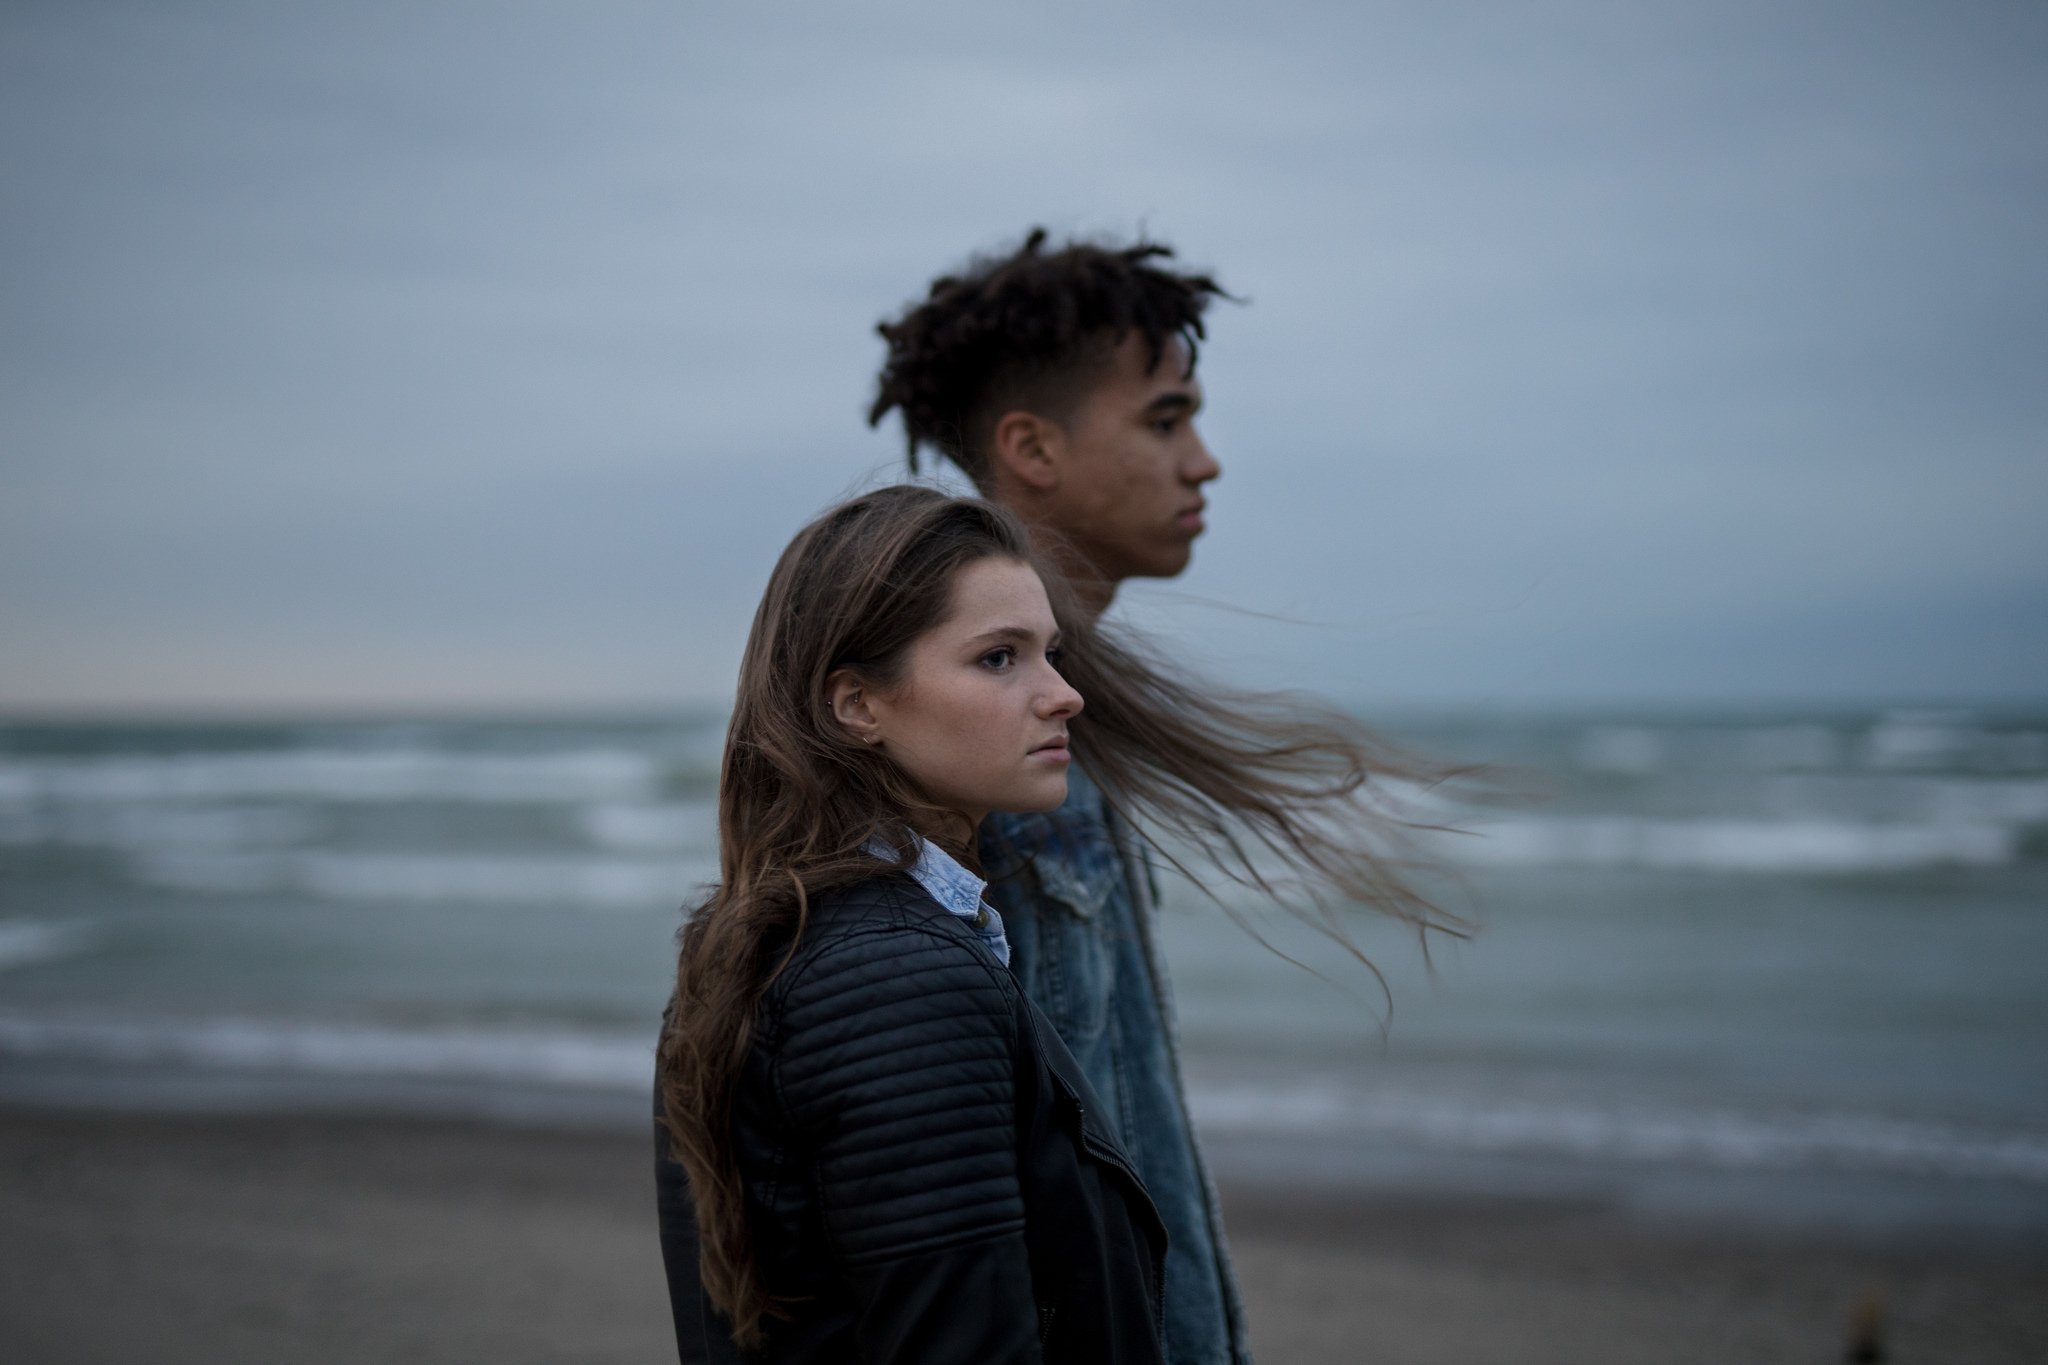 moody couple on the beach